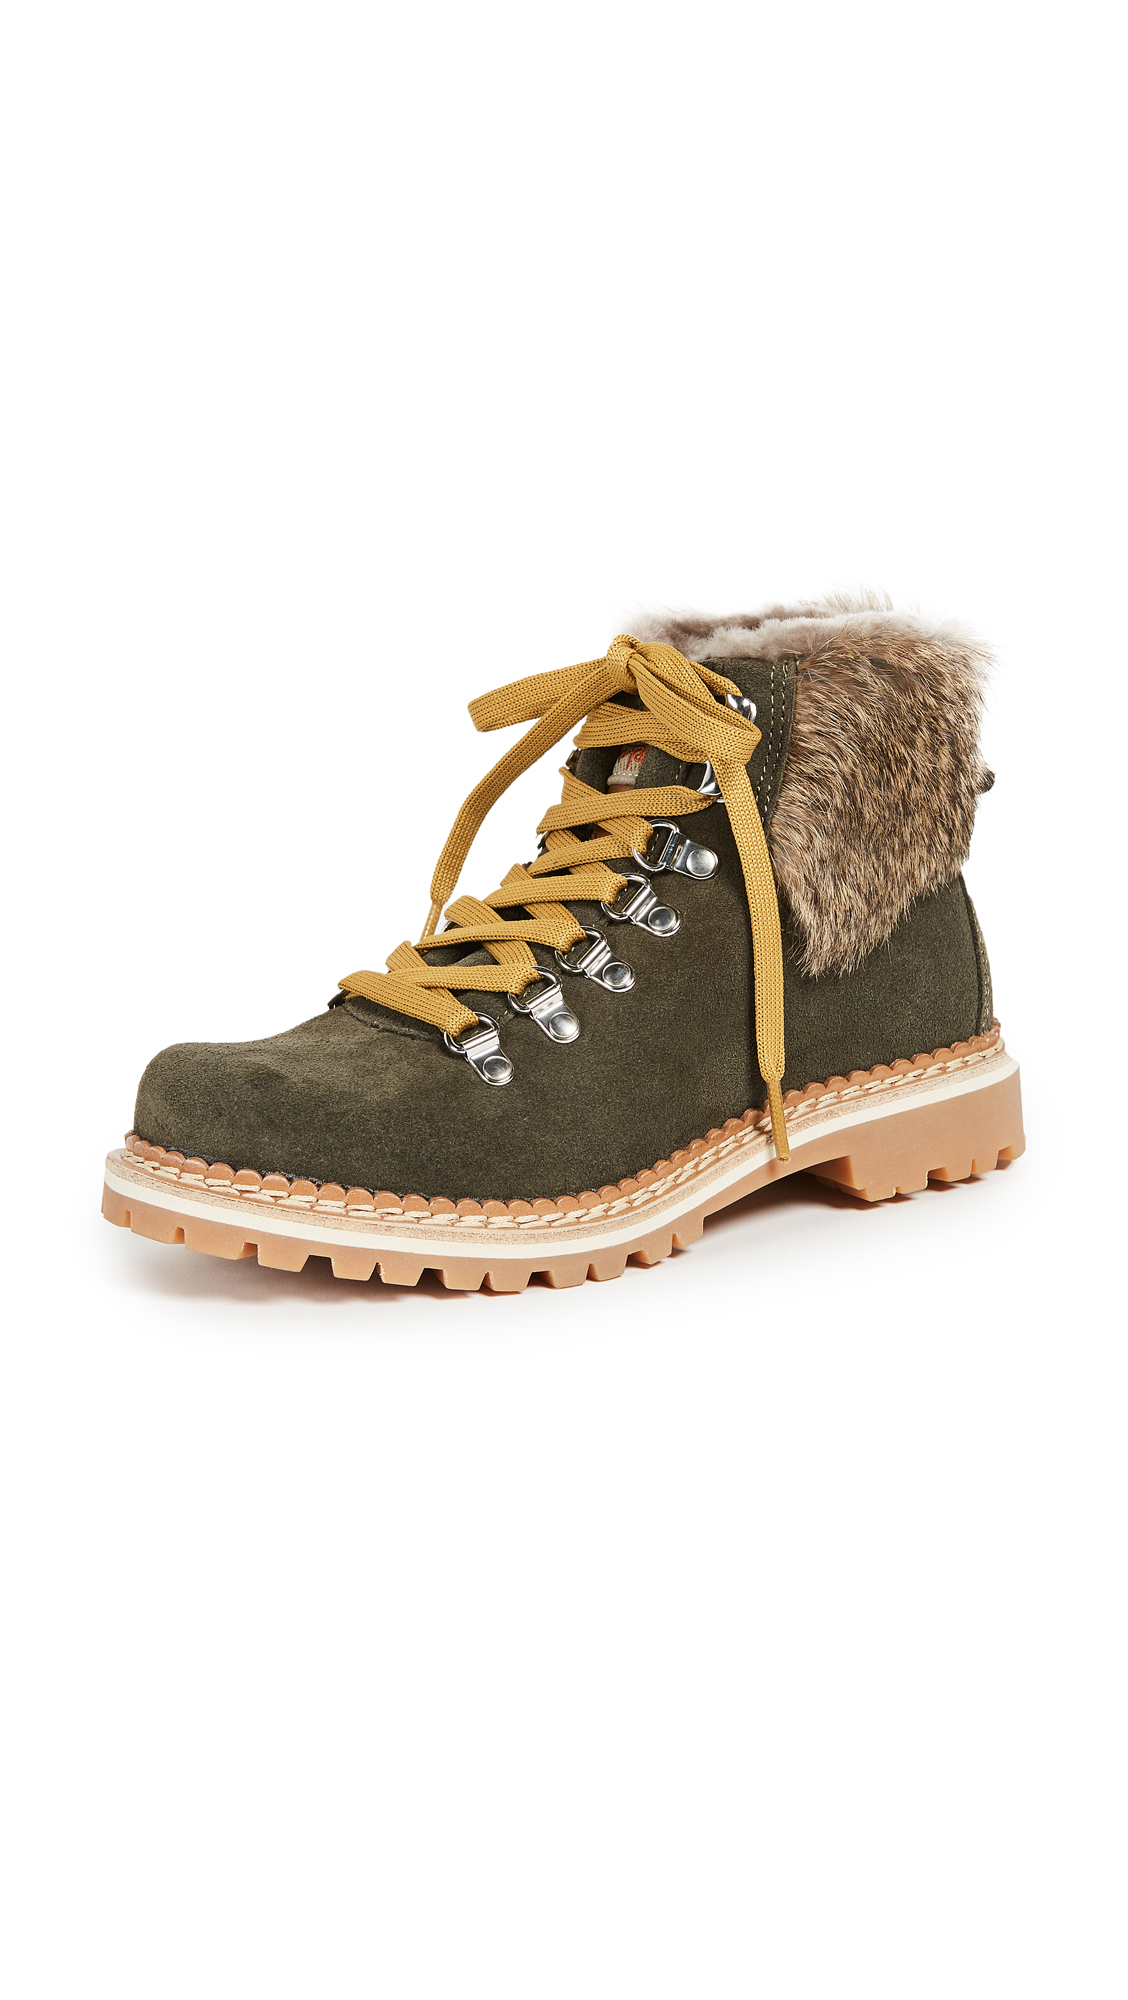 Montelliana Camelia Hiker Boots - Green/Natural